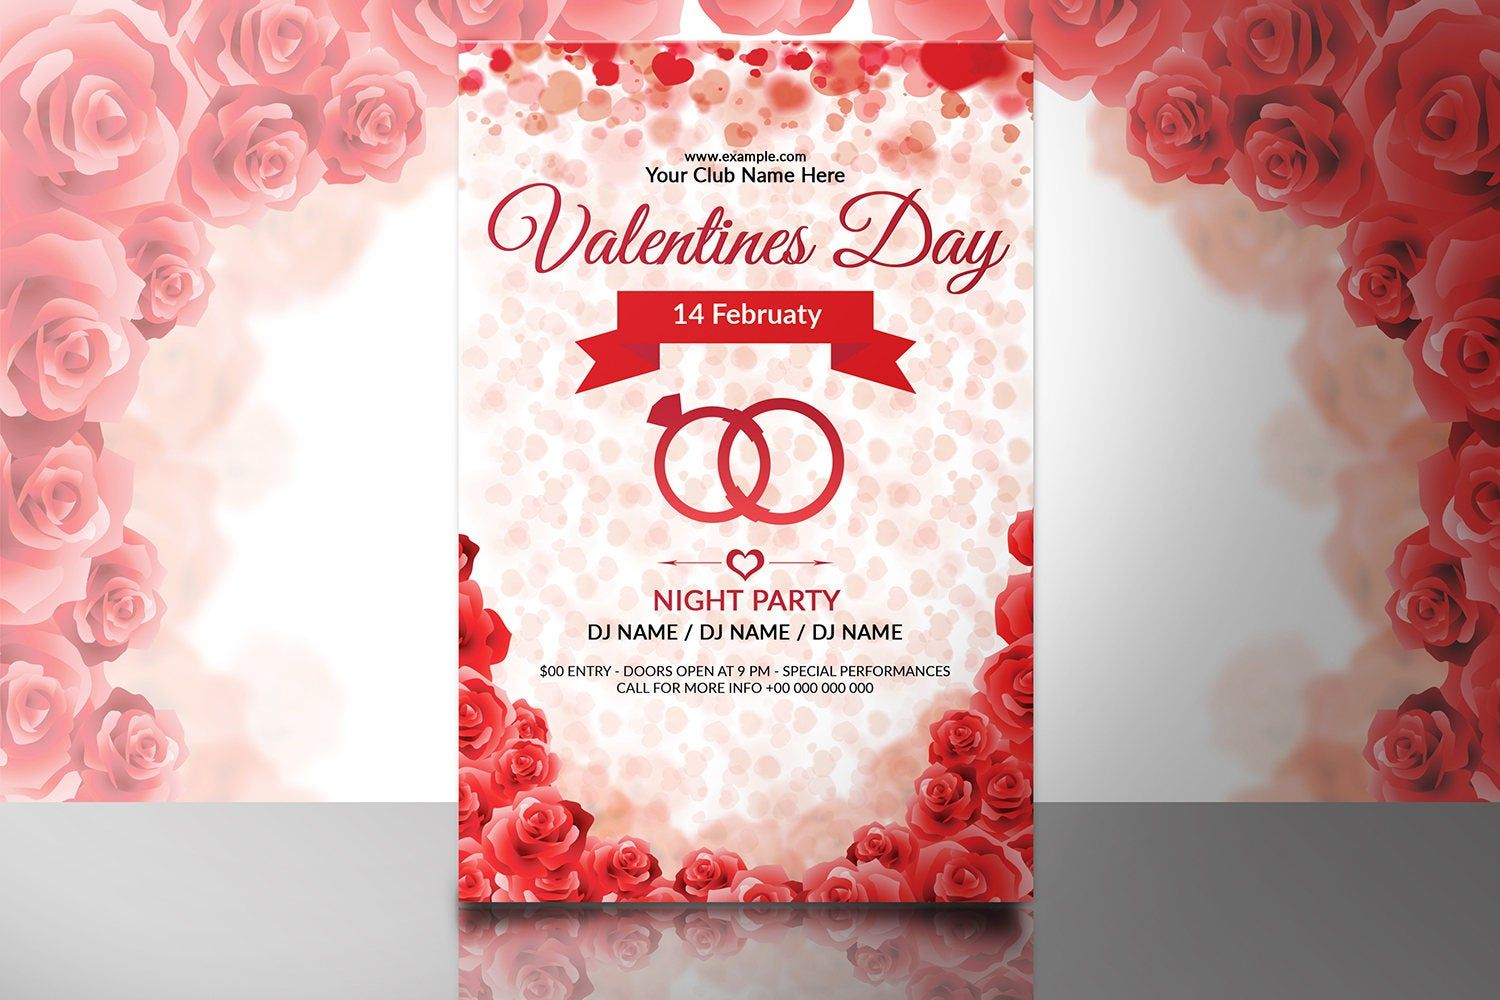 Valentines Day Party Flyer Valentines Day Party Invitation Etsy In 2021 Party Invite Template Valentines Day Party Party Flyer